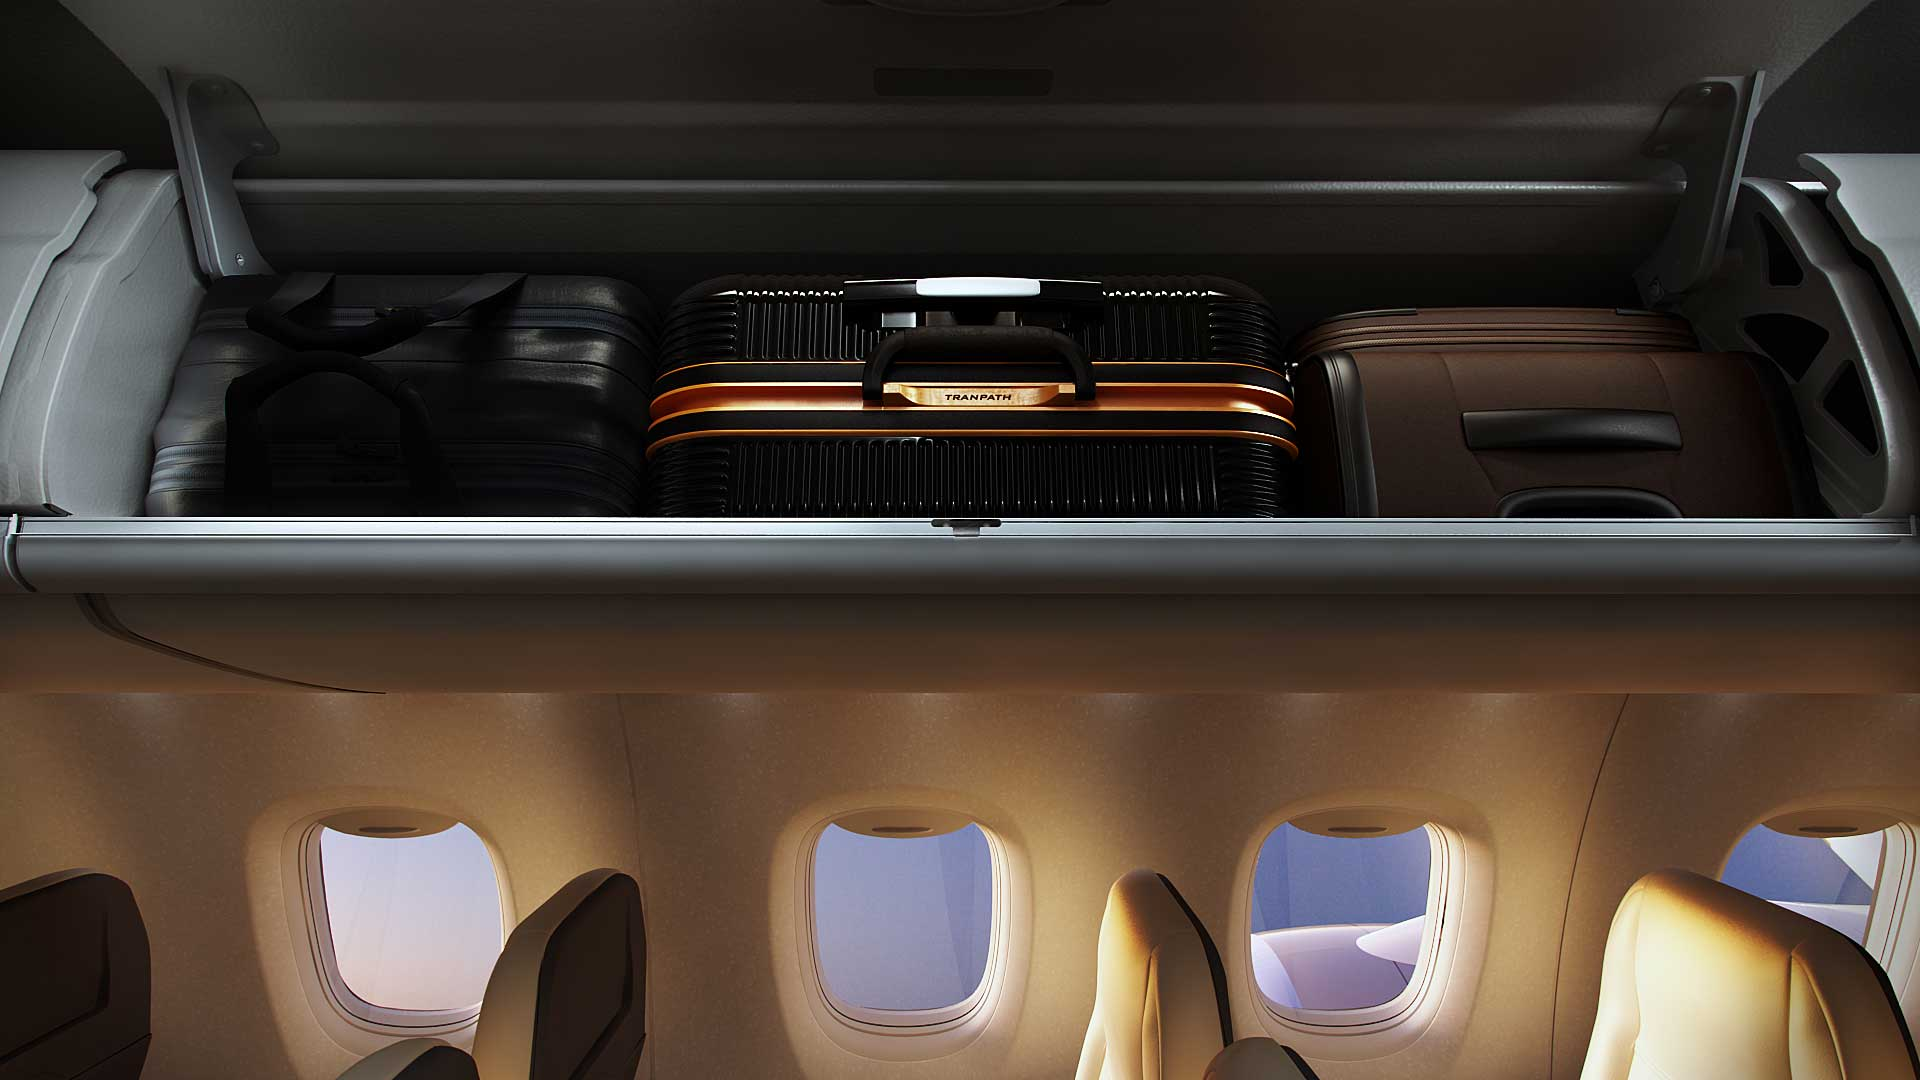 The MRJ's overhead bins can accommodate the maximum-sized carry-on bags currently allowed by airlines